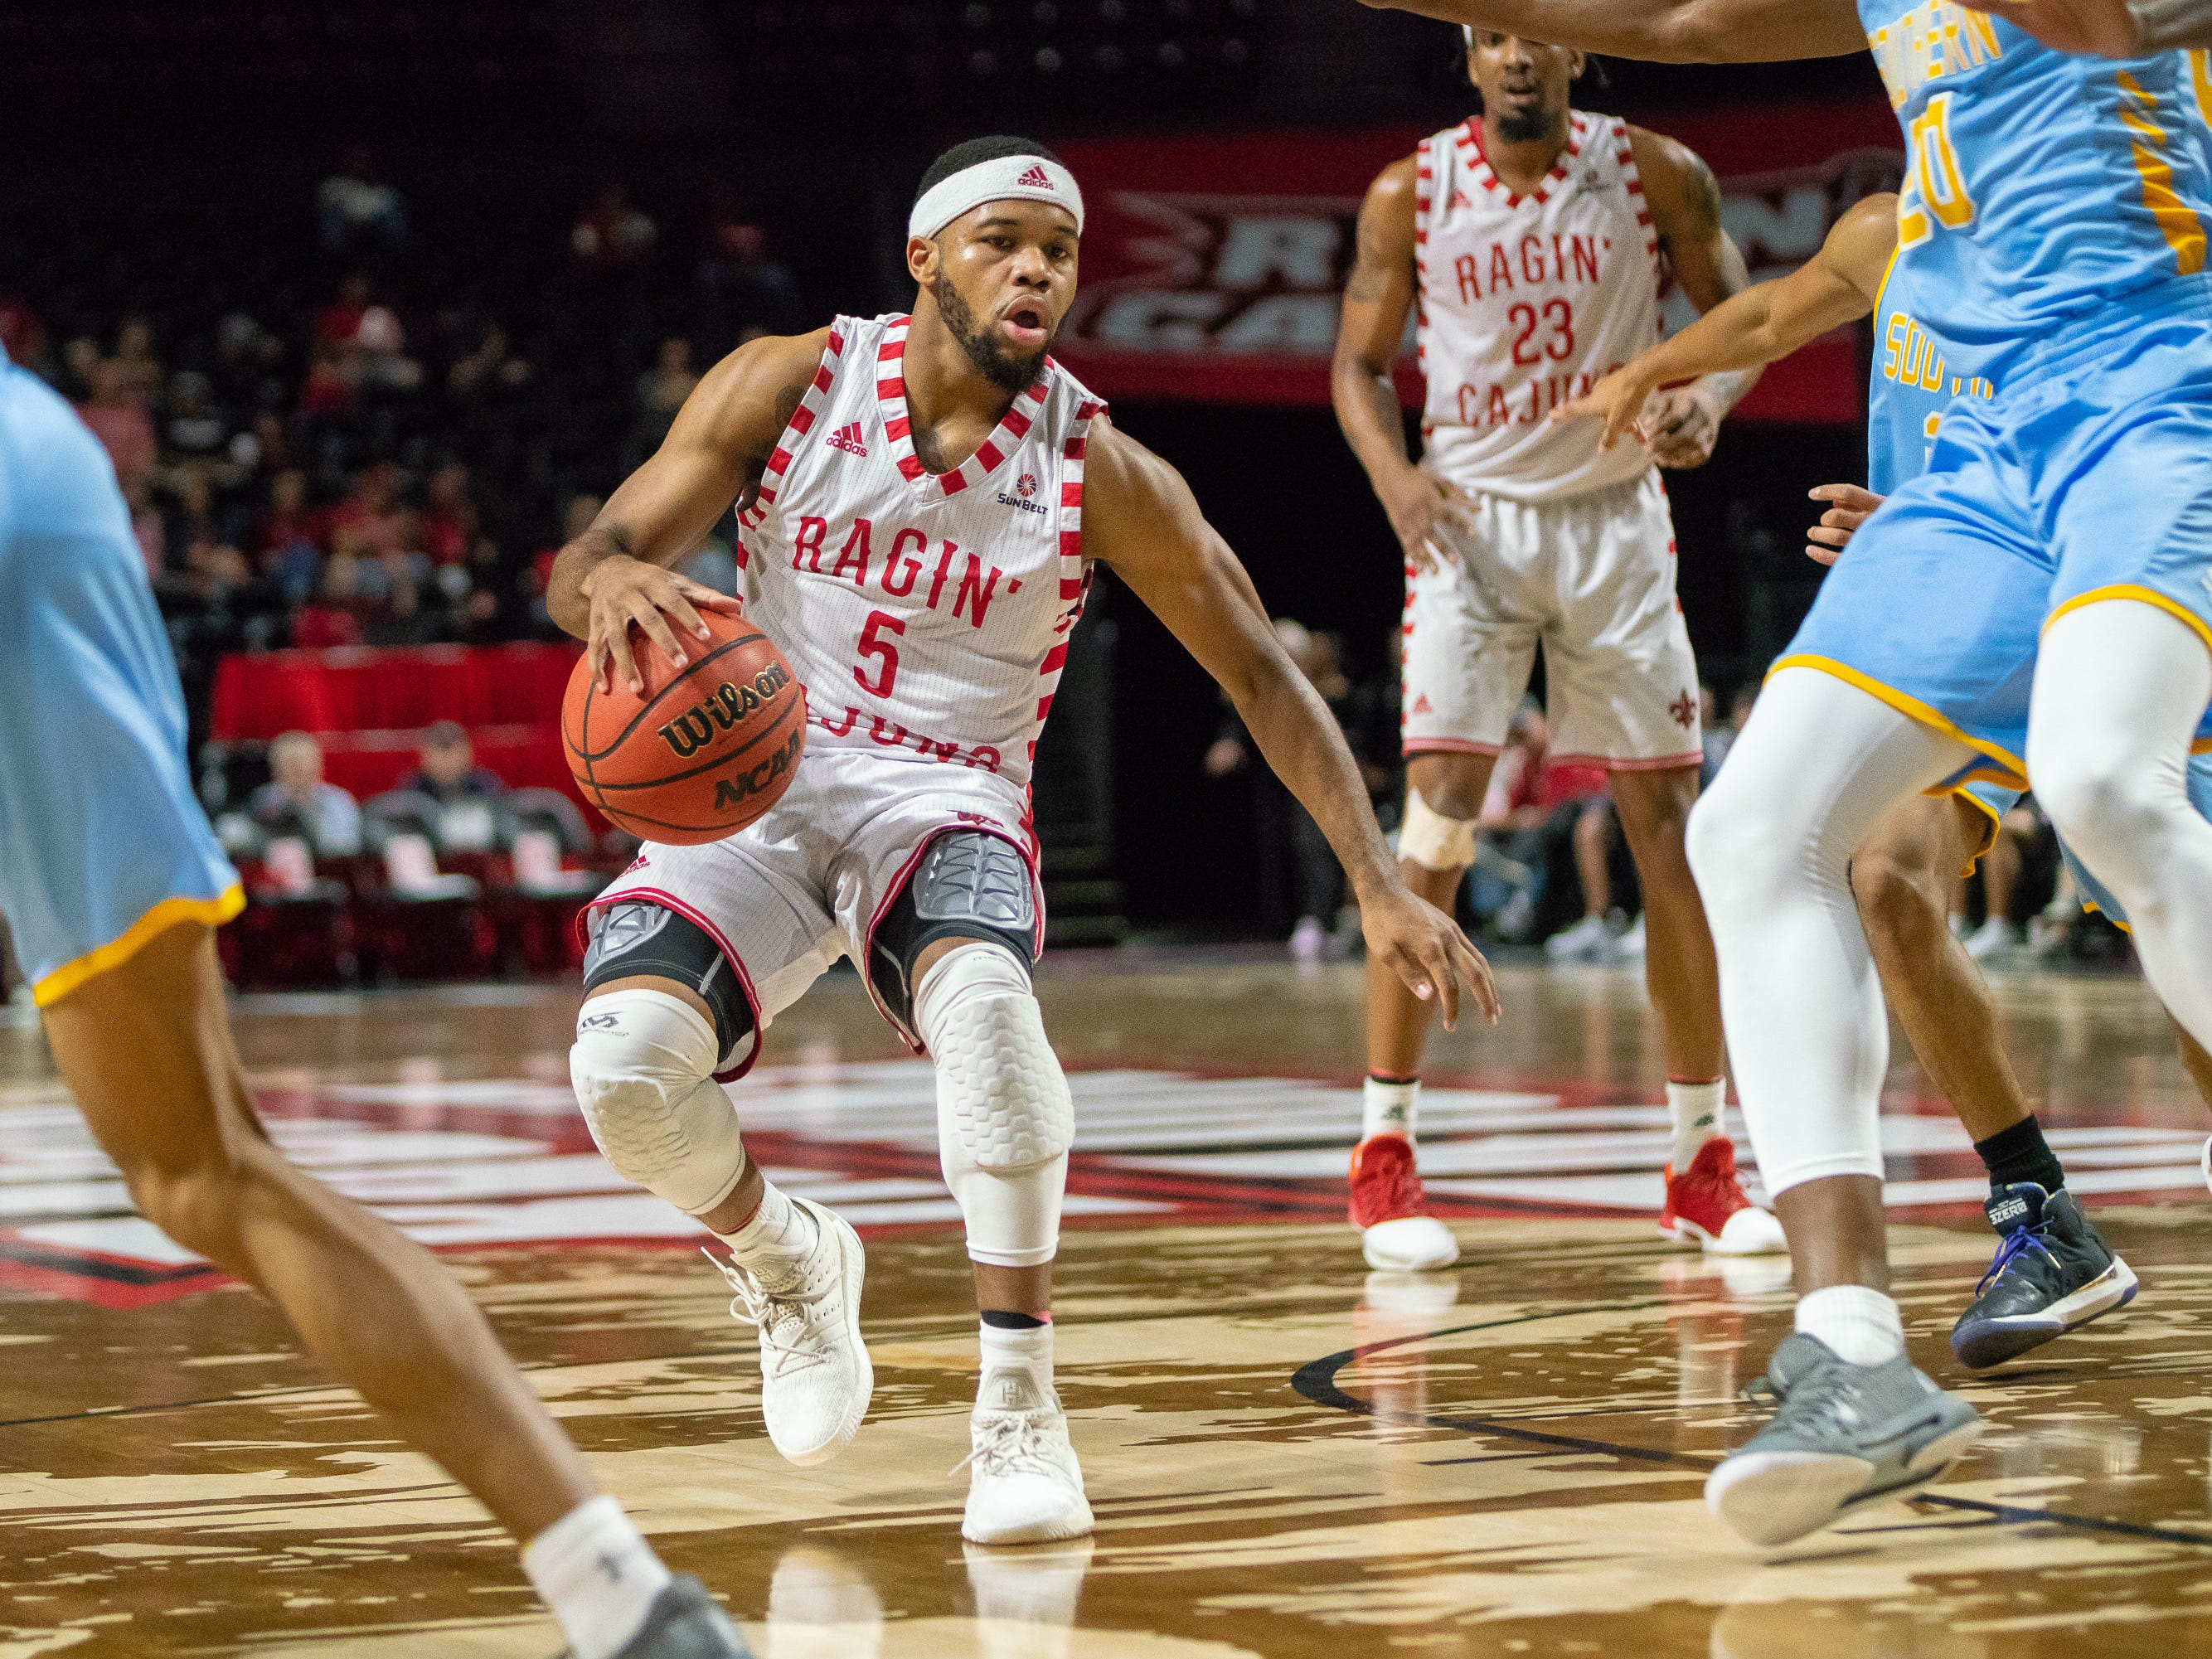 UL's Trajan Wesley moves the ball on the court as the Ragin' Cajuns play against the Southern University Jaguars at the Cajundome on December 1, 2018.